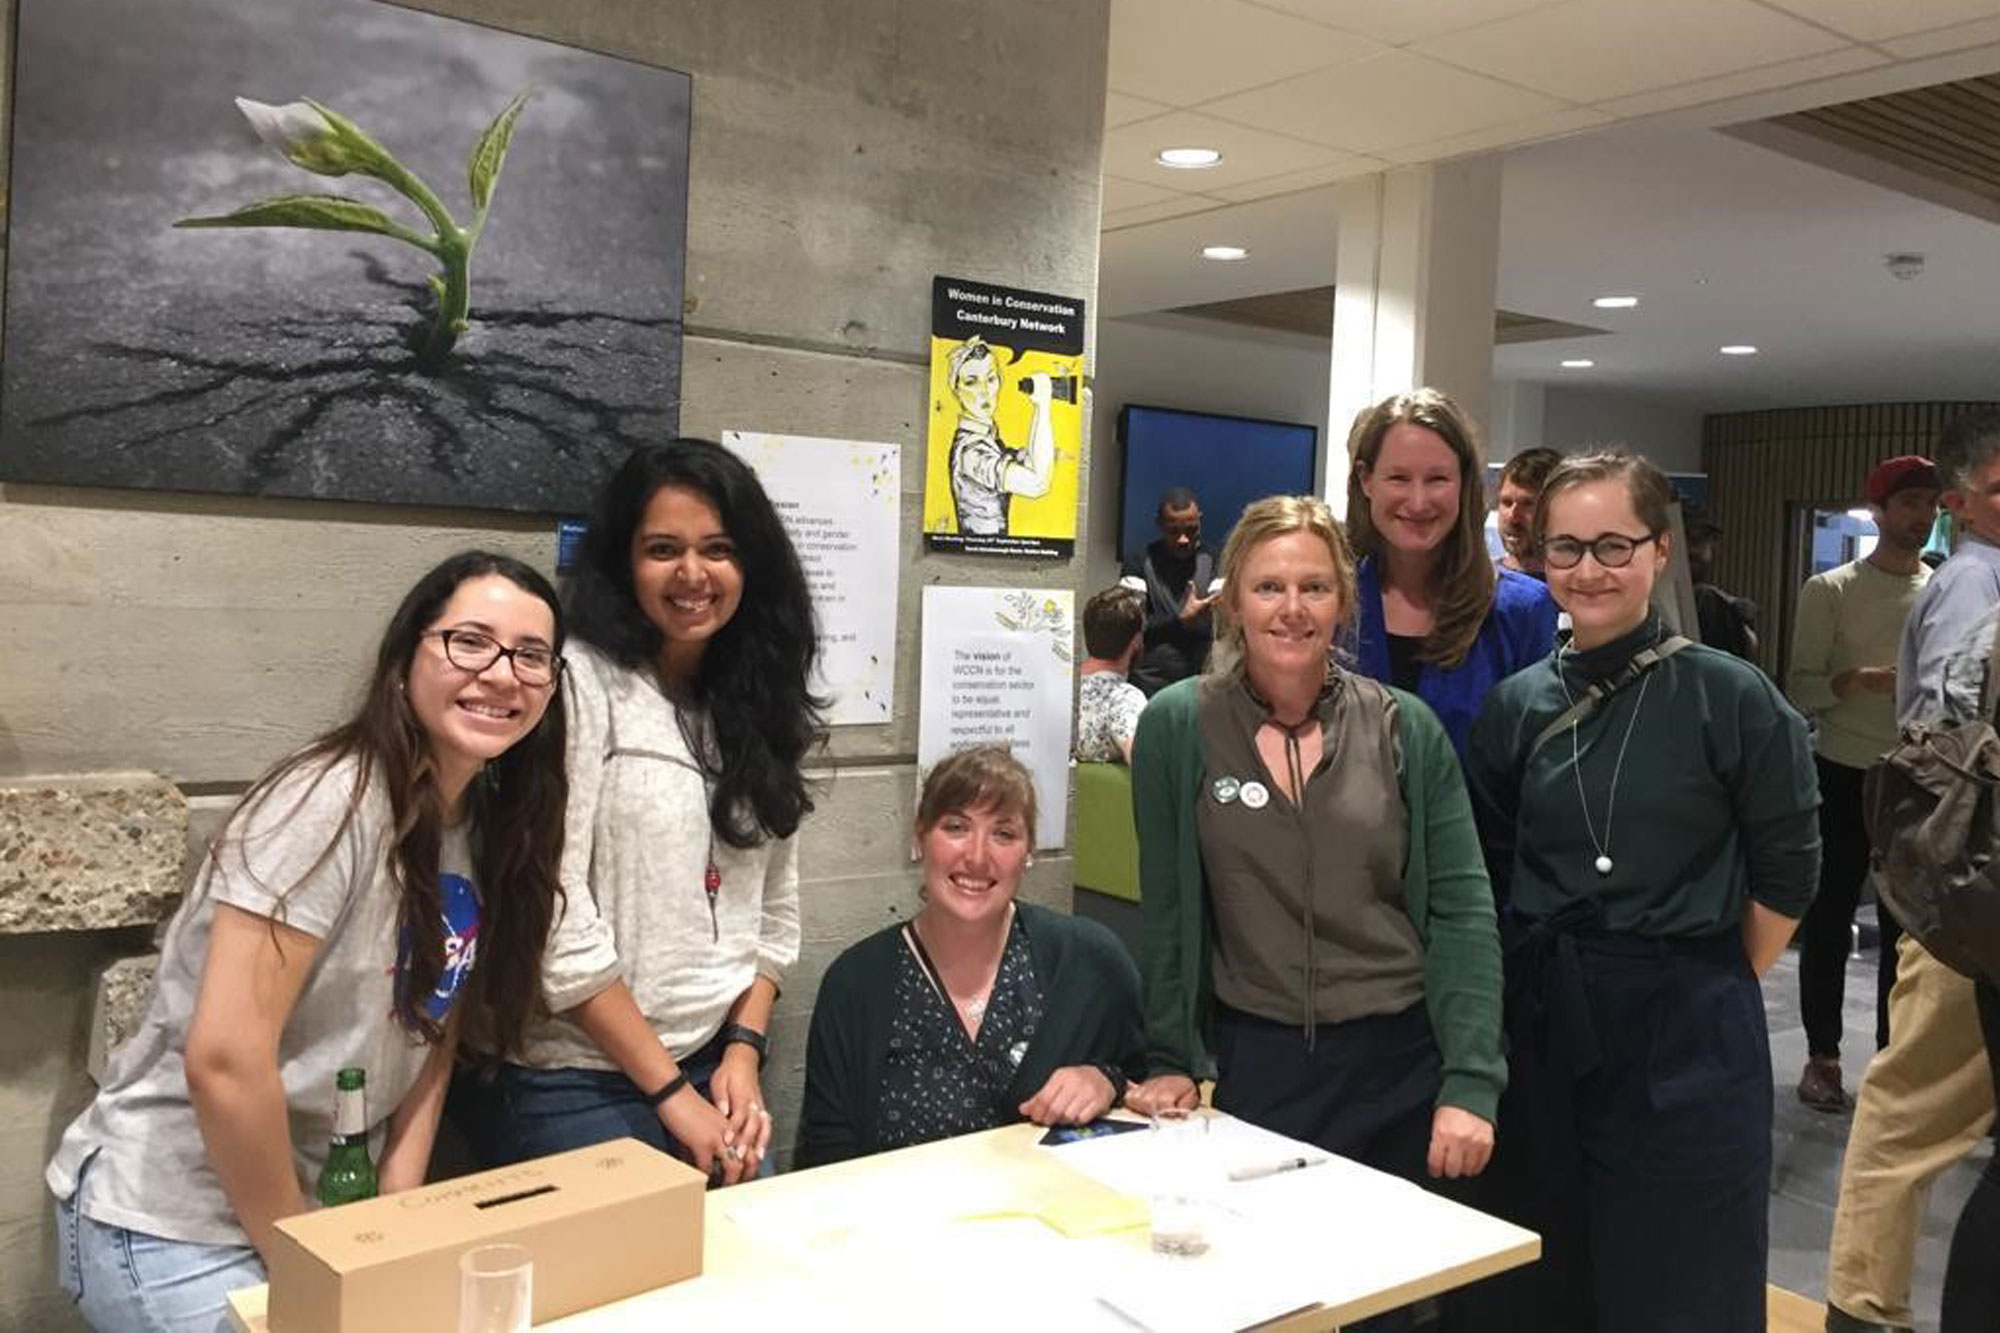 Members of the Women in Conservation Canterbury Network in the foyer of the School of Anthropology and Conservation